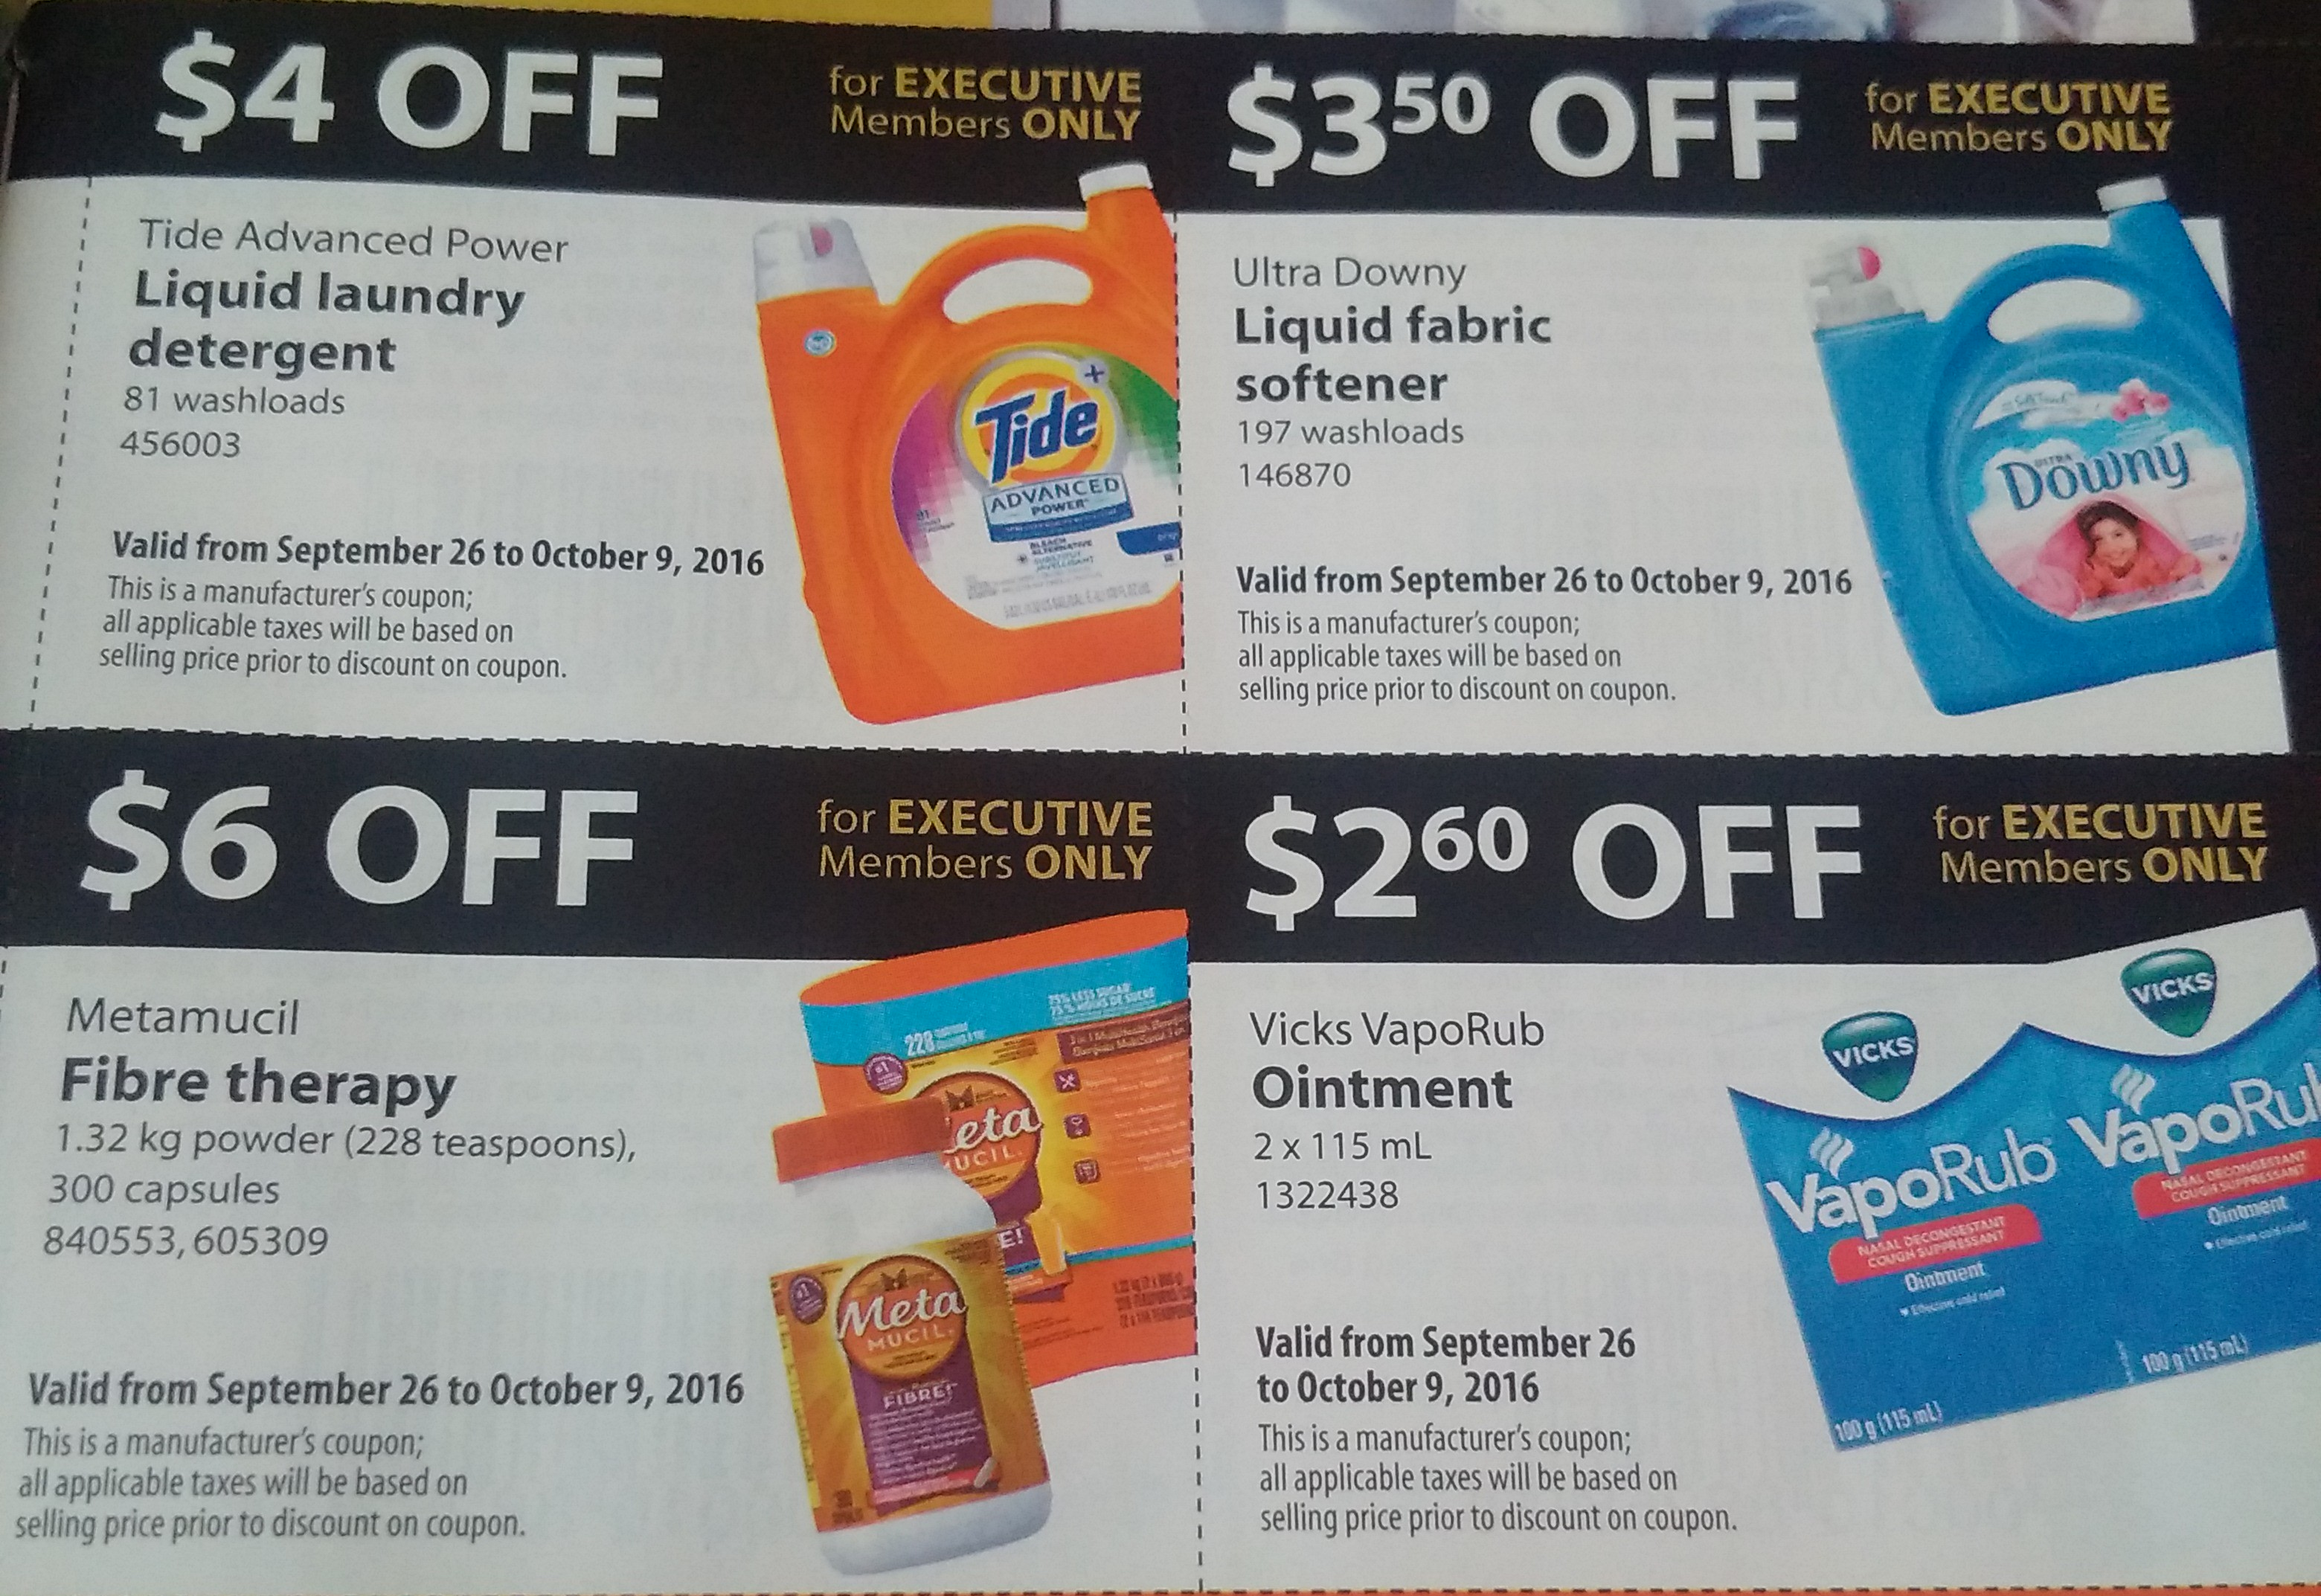 Costco Coupons, Nov 25% Off + 6 more Codes 25% off Get Deal Read on to find out what you can do in the absence of Costco coupons and how you can use a promo code to shop. What to do if there are no Costco promo codes Tip 1 - If you use Costco's products and services frequently, you could benefit from a coupon alert subscription.